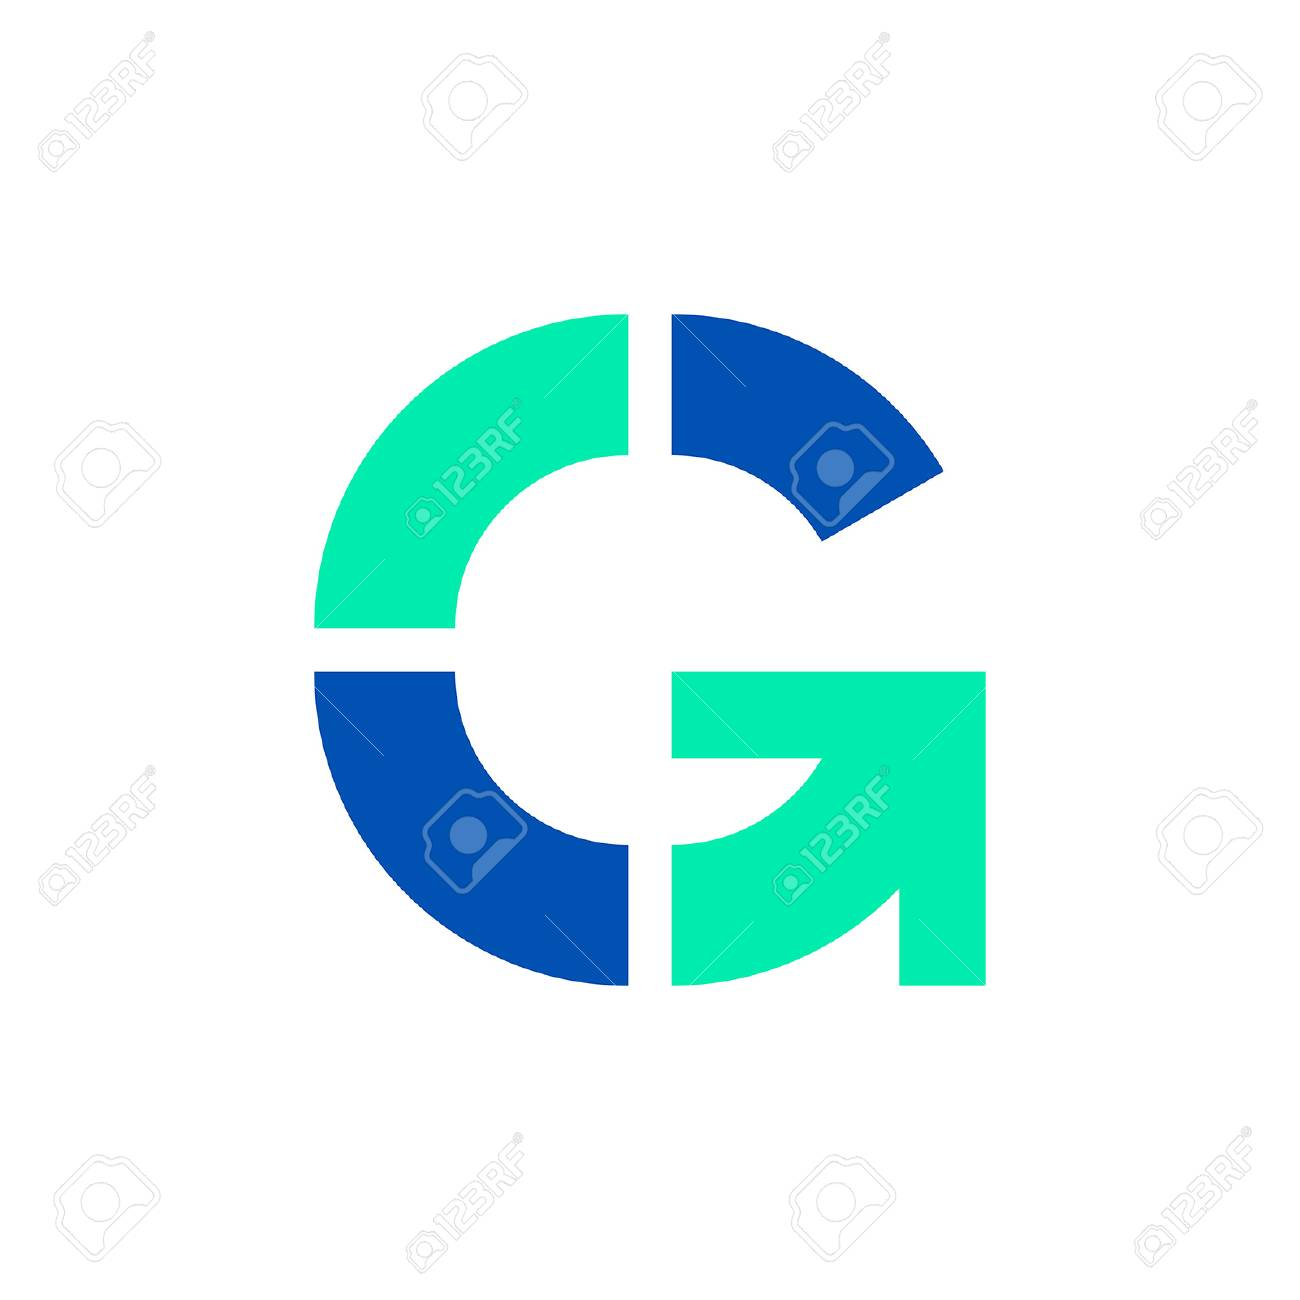 Letter G logo. Icon design. Template elements - vector sign - 111365995